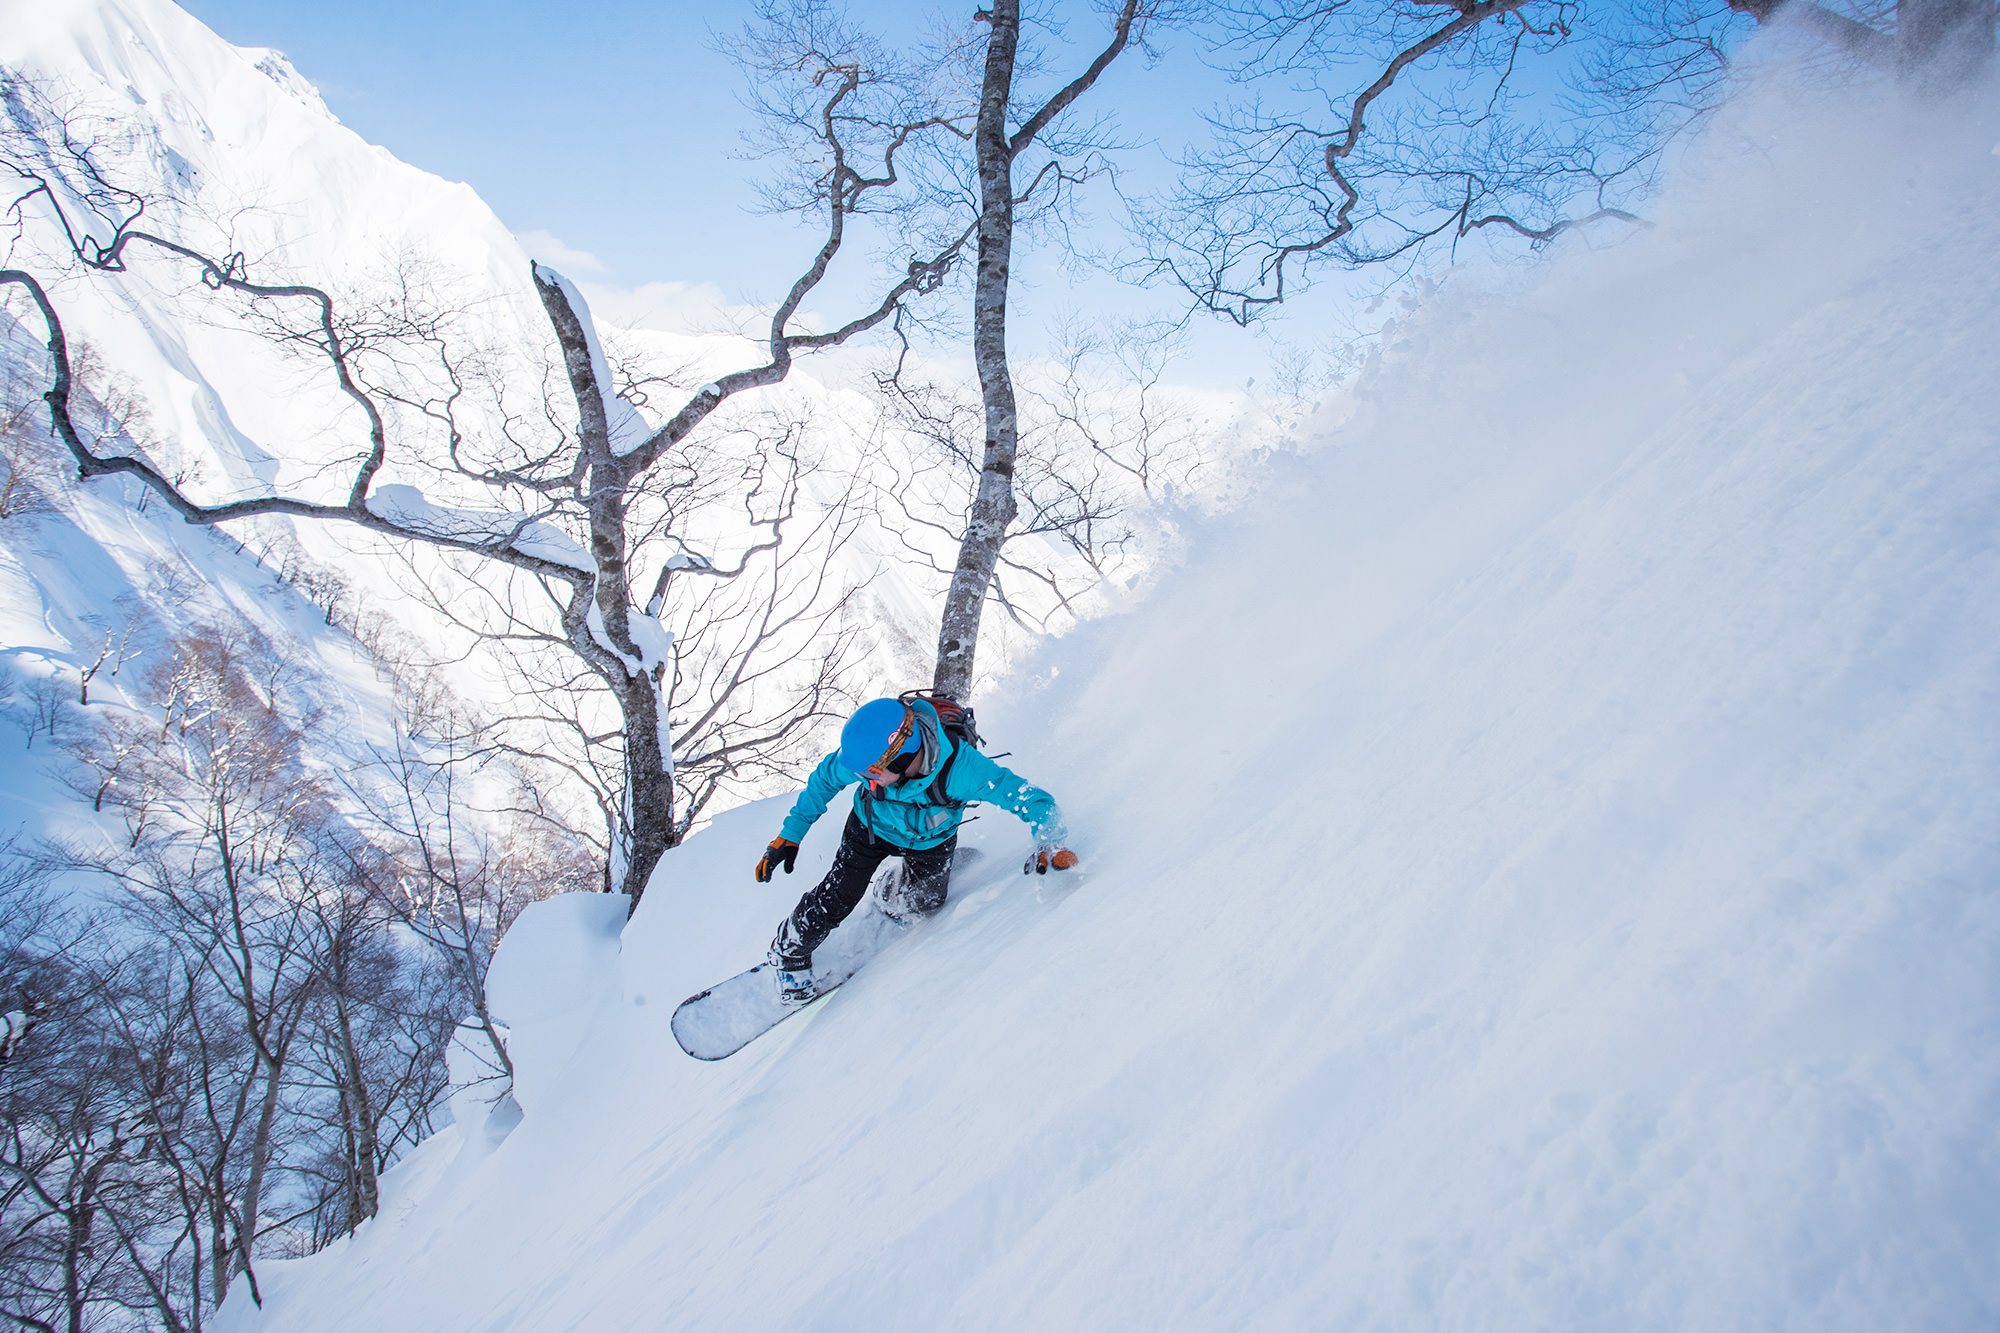 A Wealth of World-Class Skiing and Snowboarding Opportunities